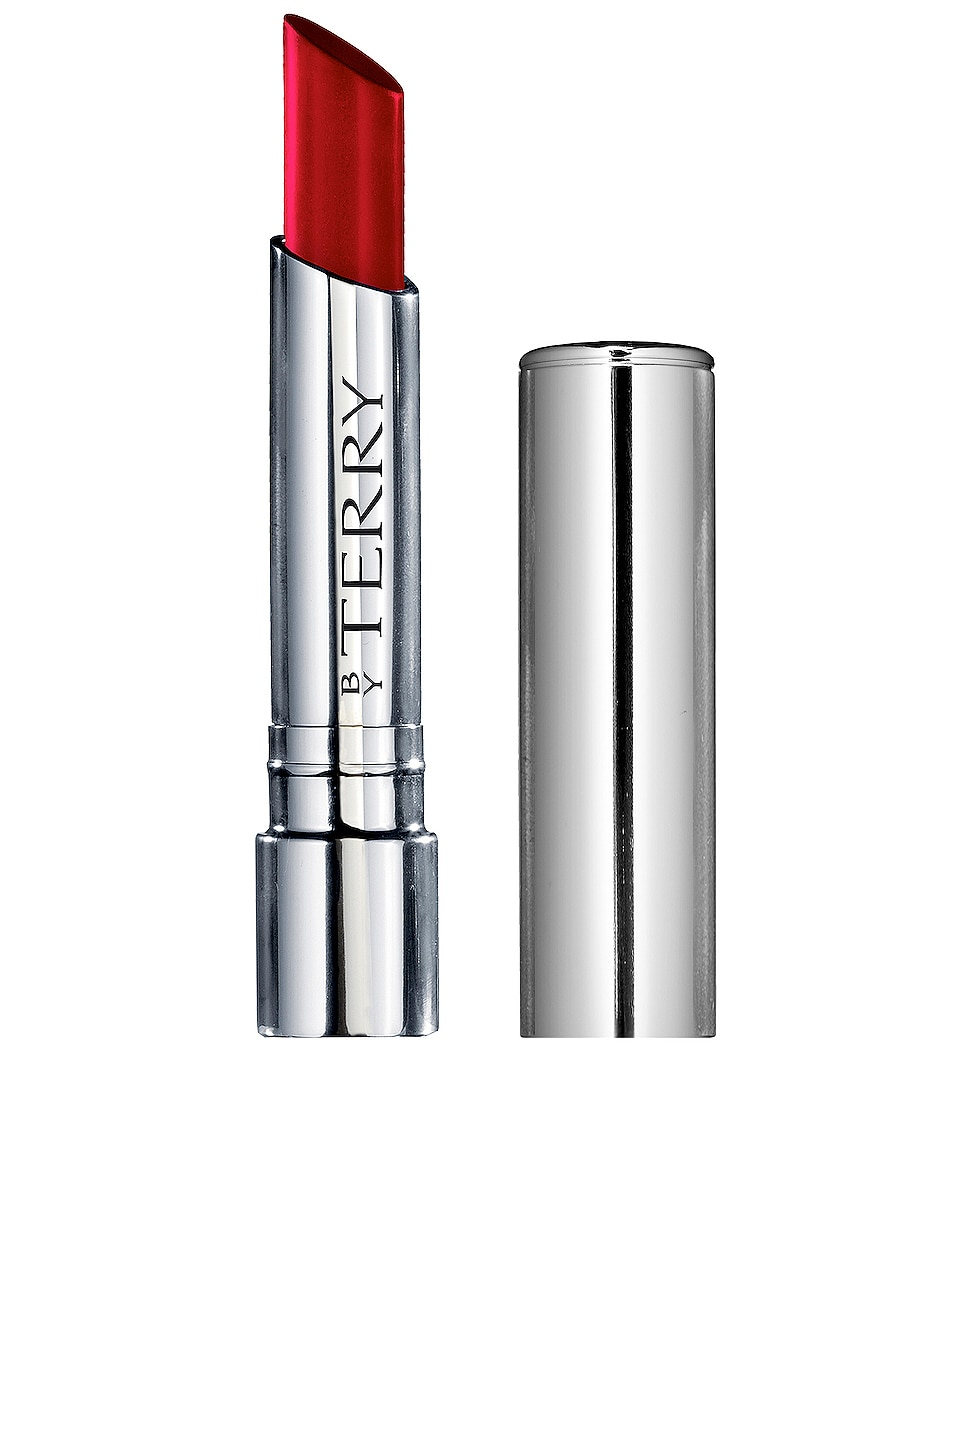 By Terry Hyaluronic Sheer Rouge Hydra-Balm Lipstick in Be Red